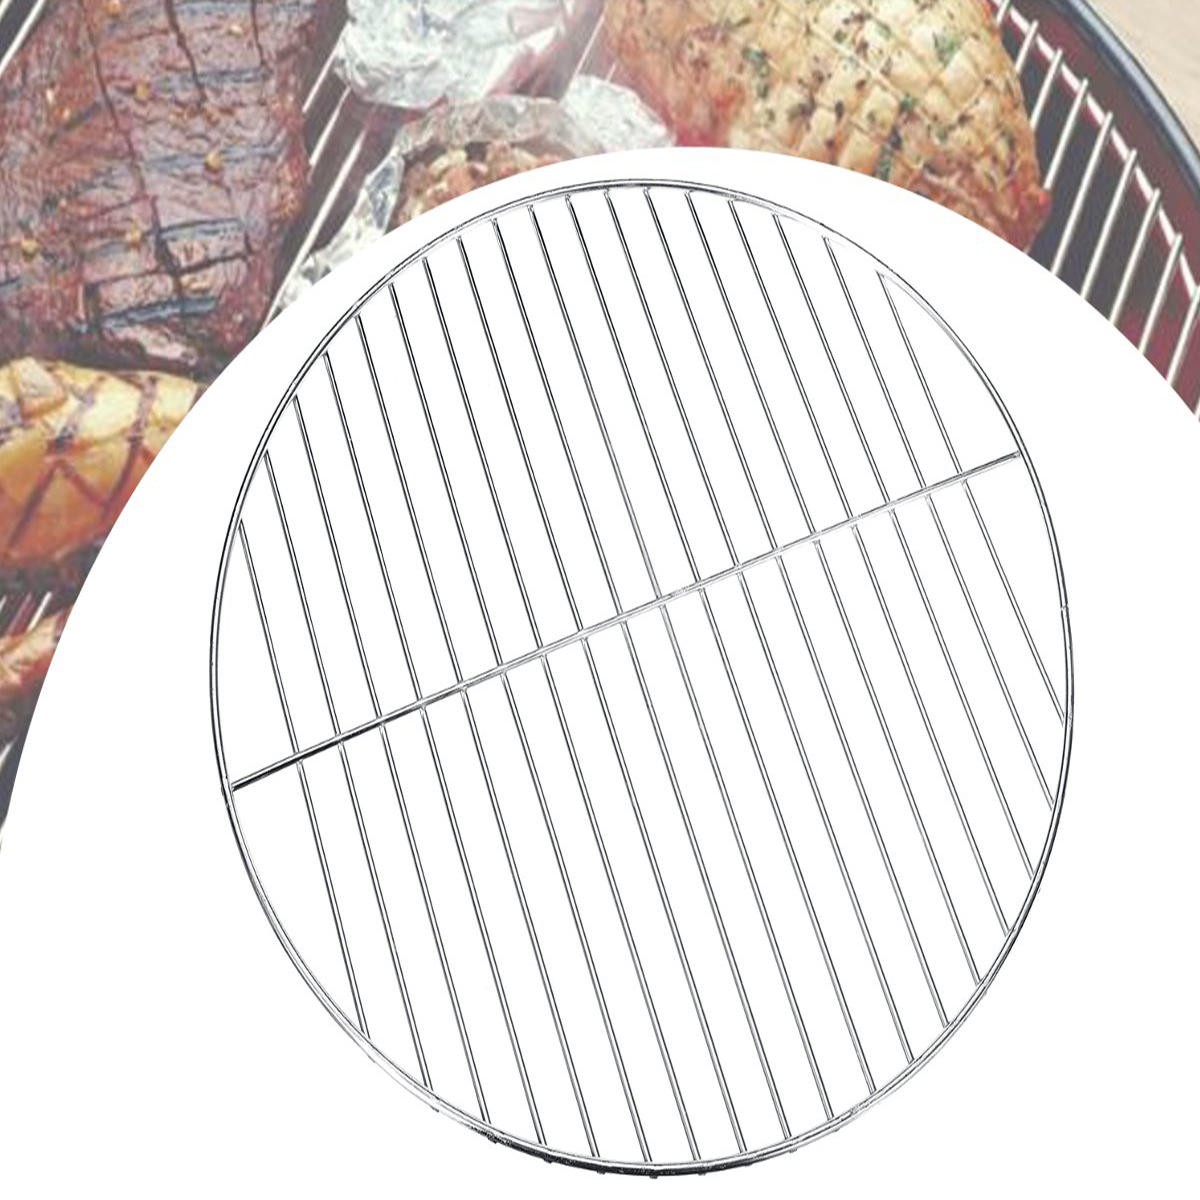 25cm Round BBQ Grill Grate Charcoal BBQ Grill Pan Replacement Metal Cooking Barbecue Mesh Frame